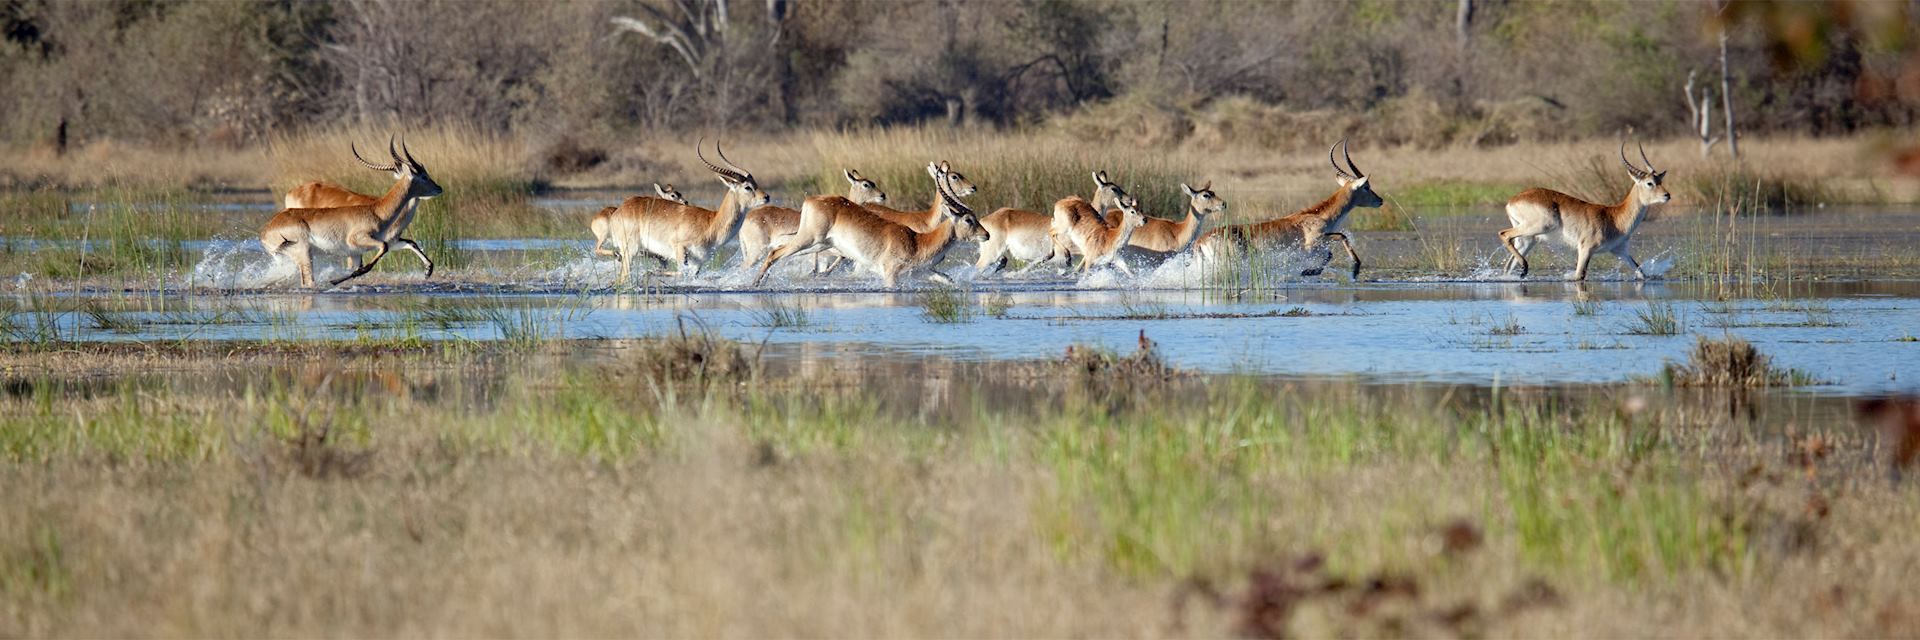 Red lechwe, Khwai Concession